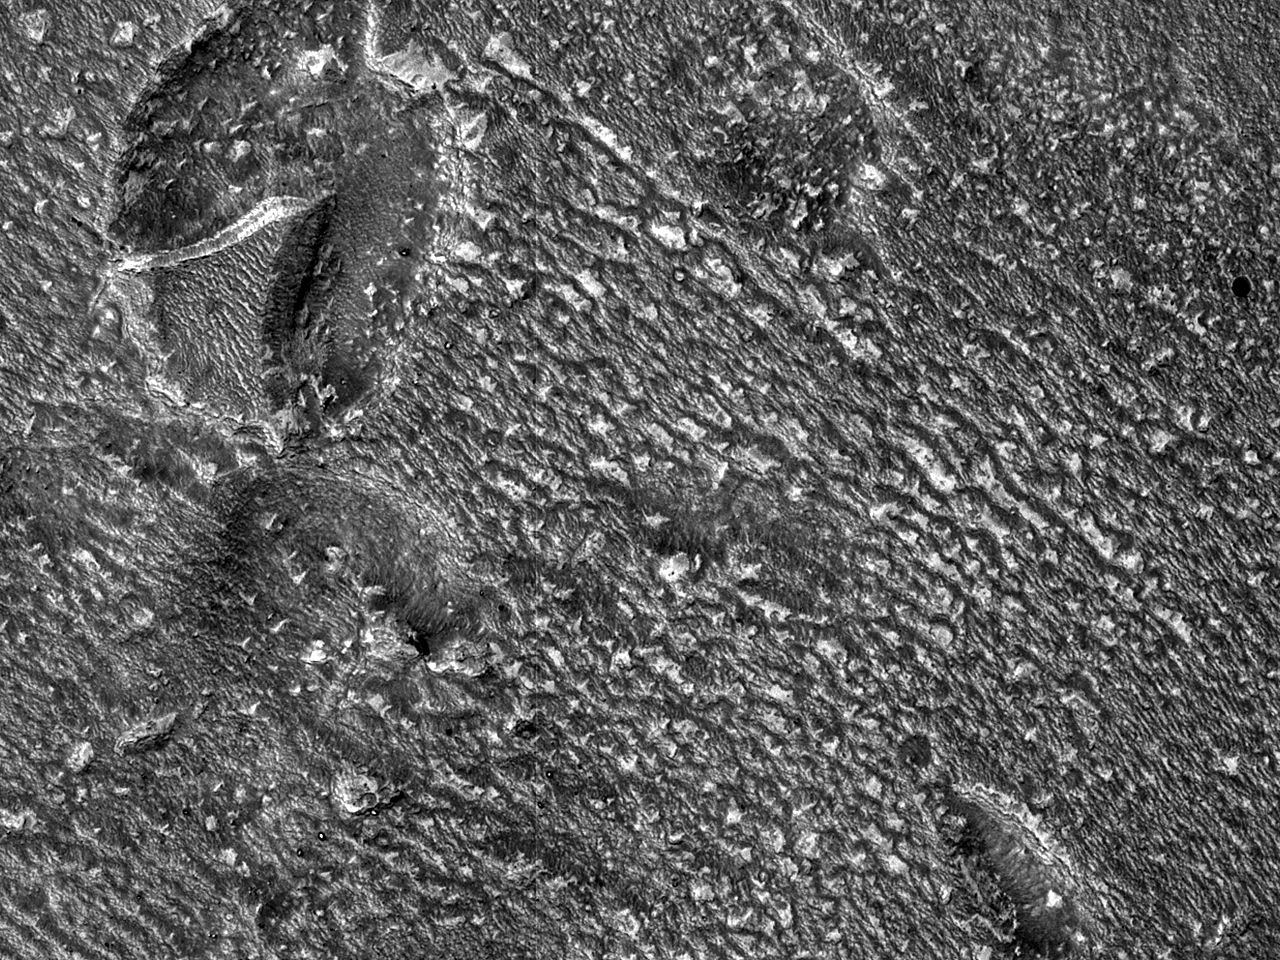 Small Surface Features in the Hellas Montes Region